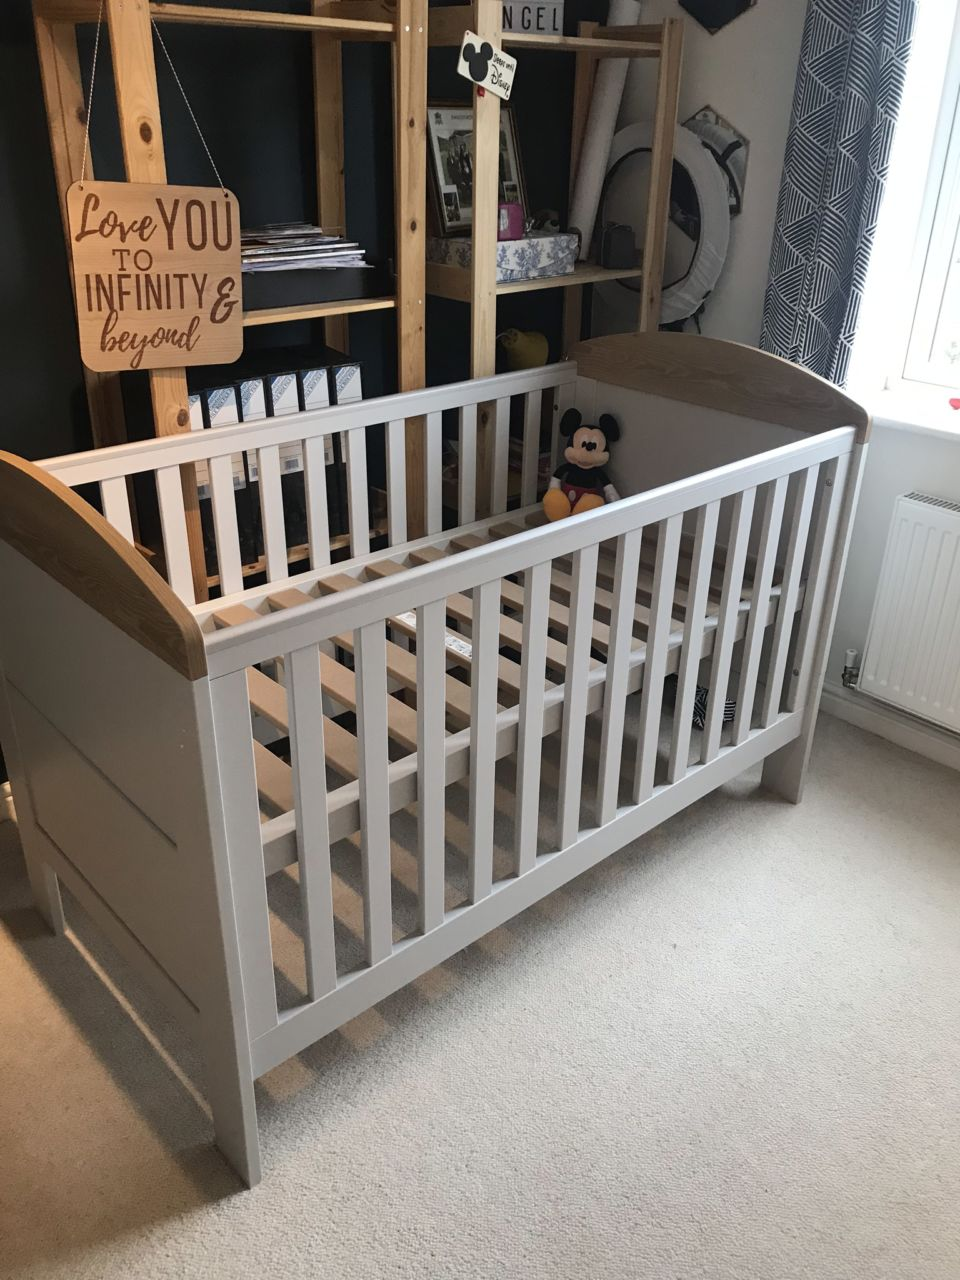 Mamas & Papas Harrow cot for nursery from Argos